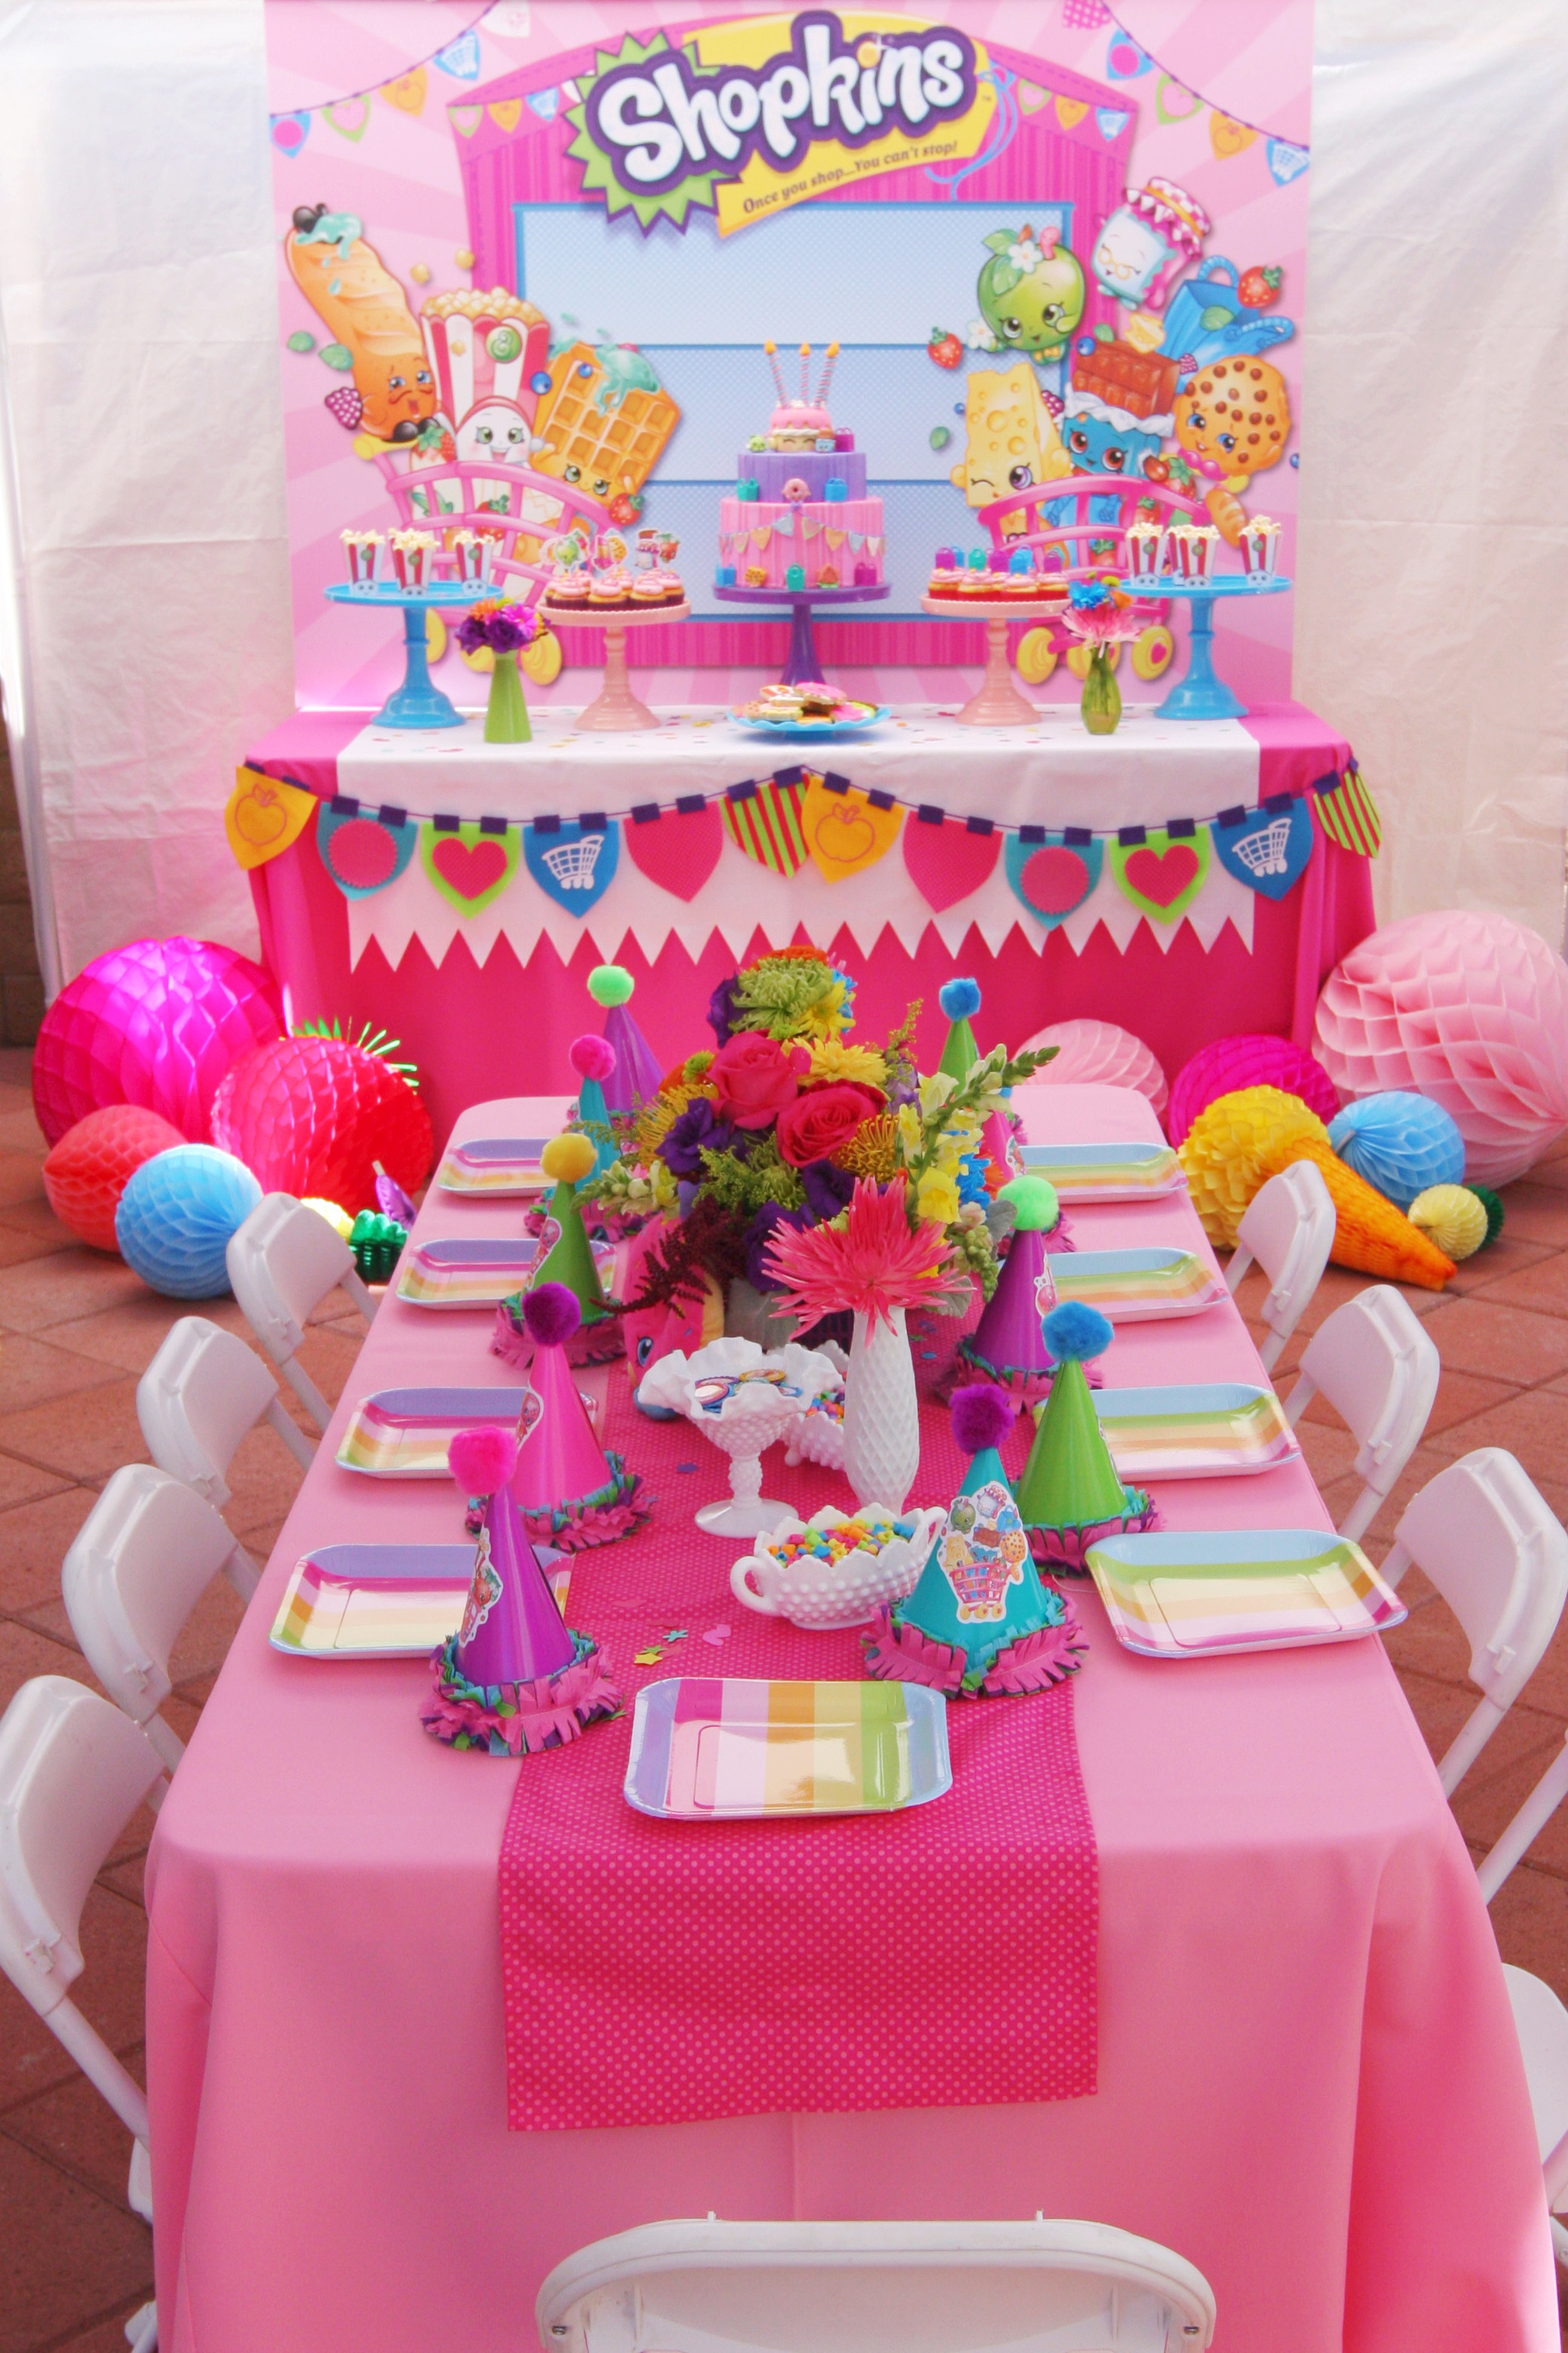 Best ideas about Shopkins Birthday Decorations . Save or Pin Shopkins Birthday Party by Minted and Vintage Now.